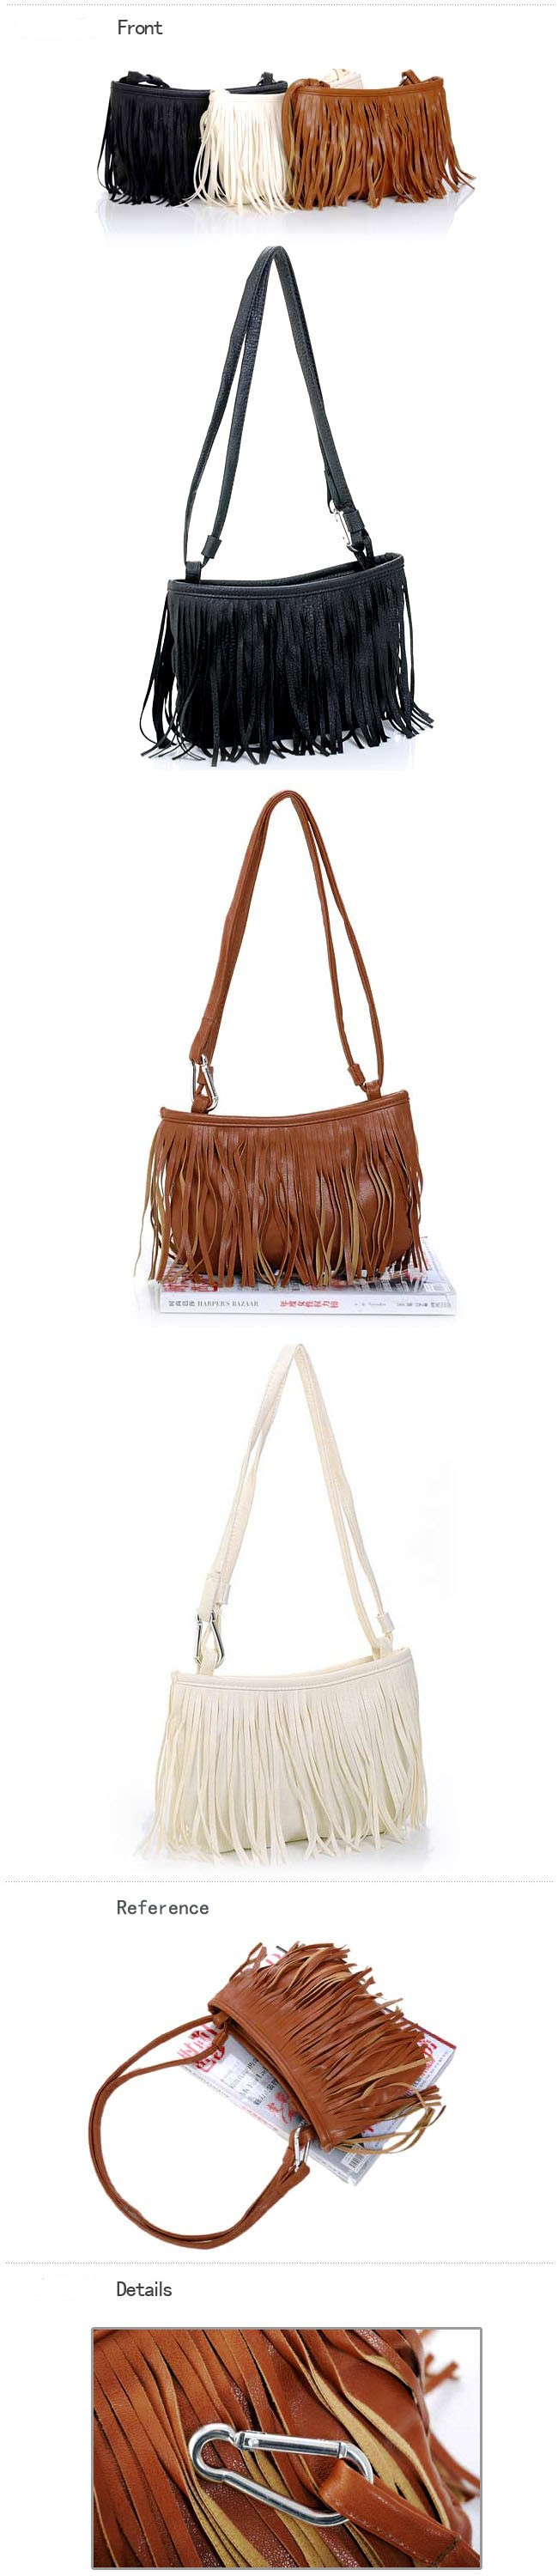 2016 Cute Fashion Womens Vintage Faux Suede Fringe Tassle PU Leather Satchel Shoulder Handbag Crossbody Bag For Women Y1